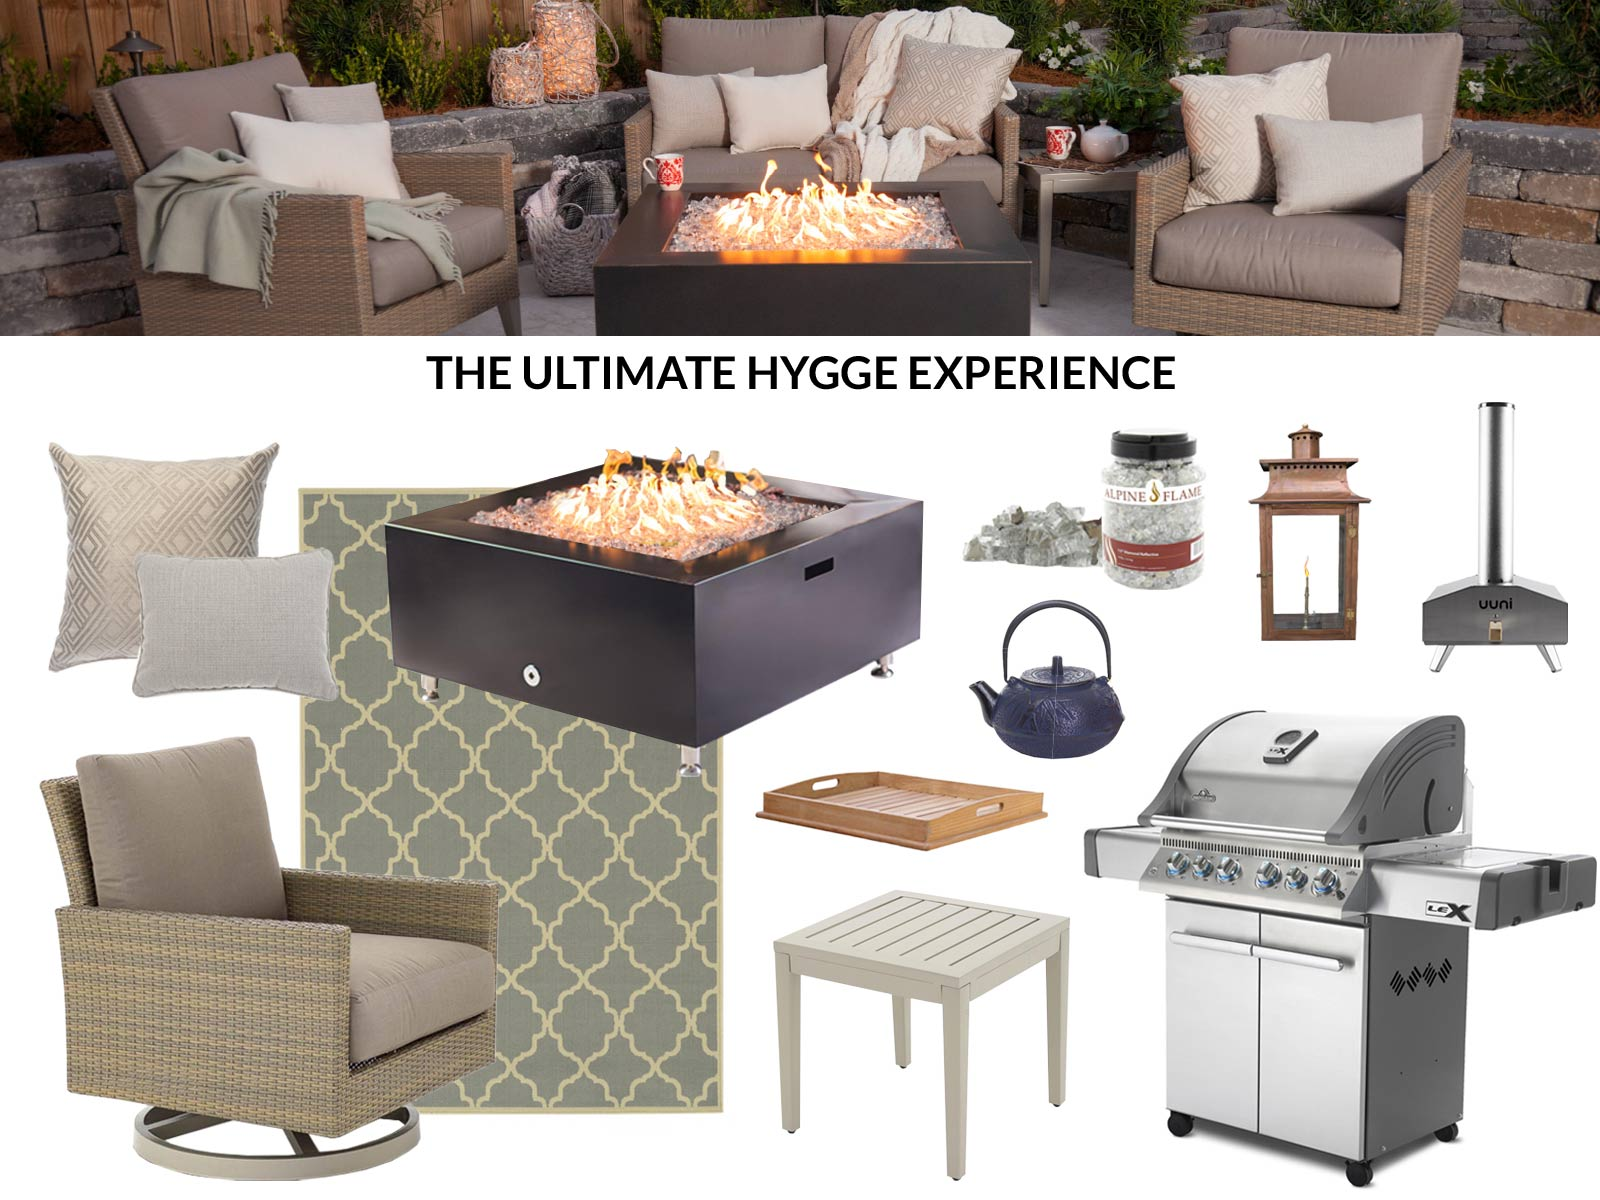 The Ultimate Hygge Experience